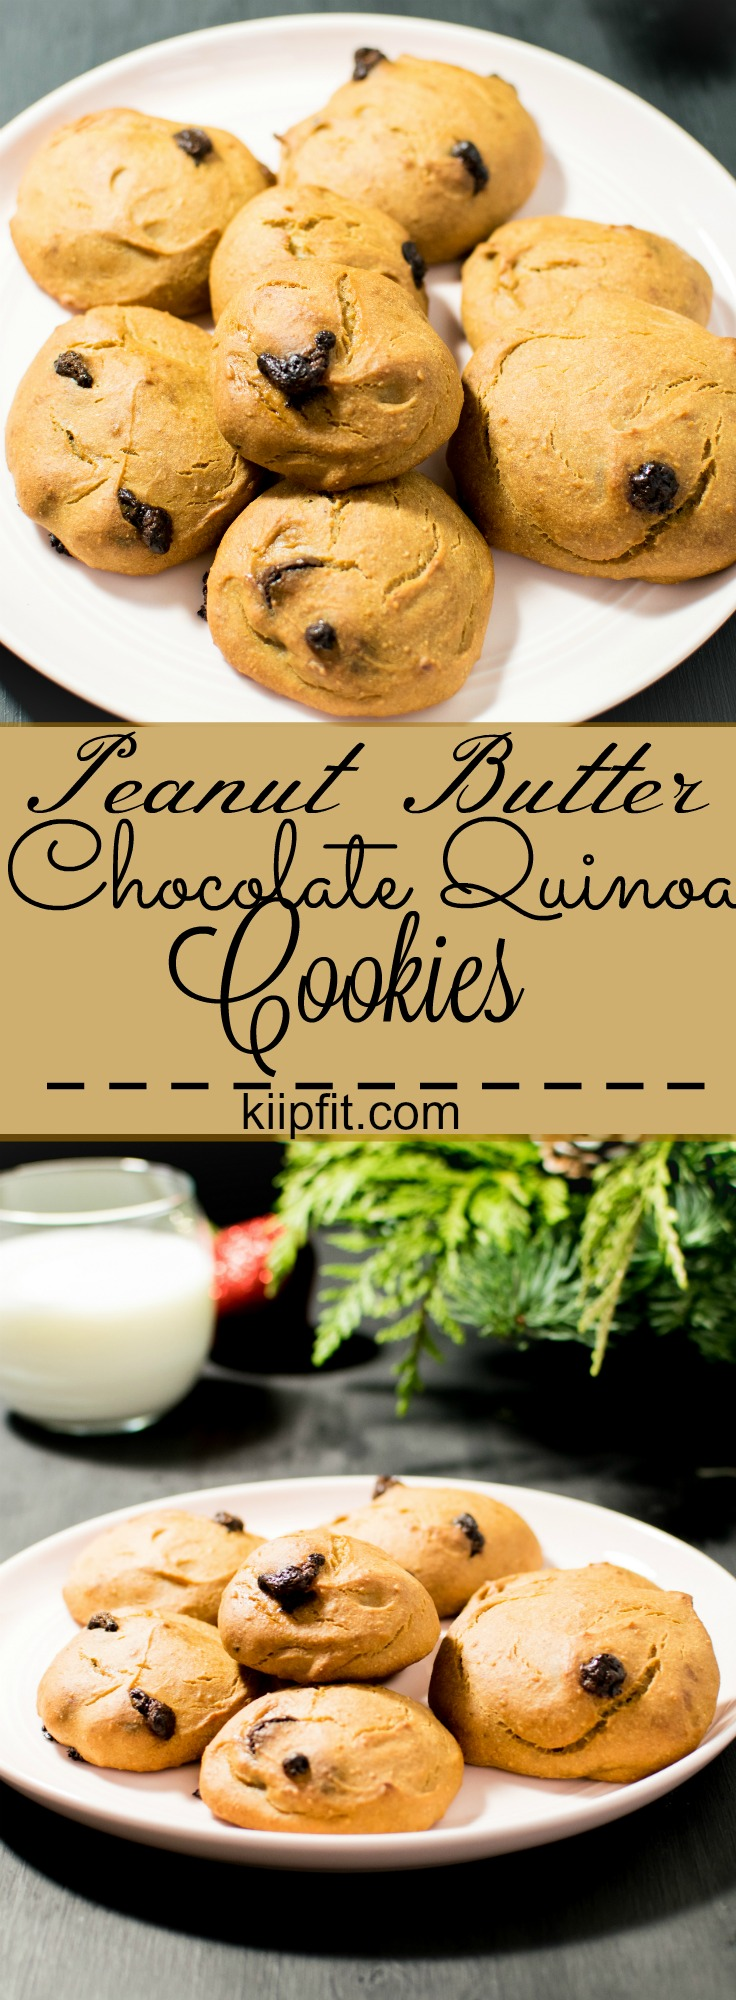 Peanut Butter Chococlate Quinoa Cookies - vegan and protein rich healthy dessert ready in only 30 minutes and so delicious | kiipfit.com